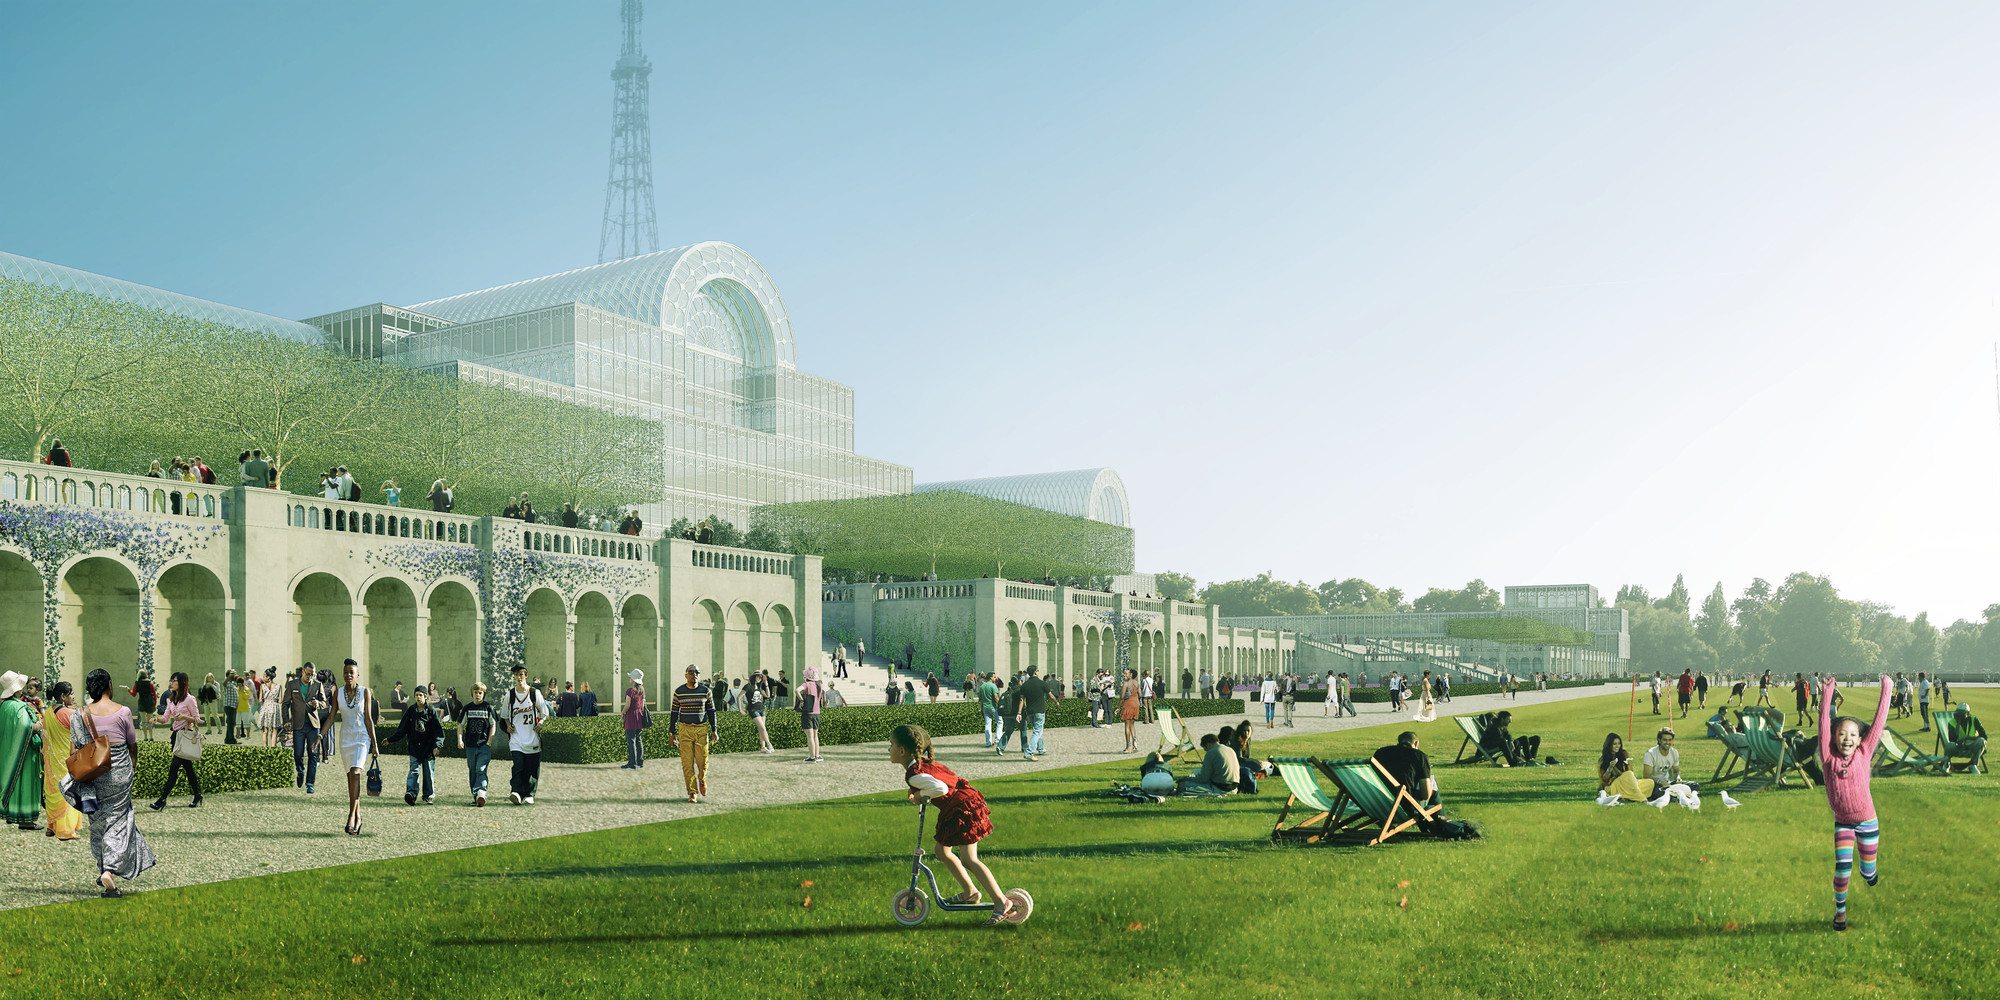 Plans Unveiled For Crystal Palace Rebuild